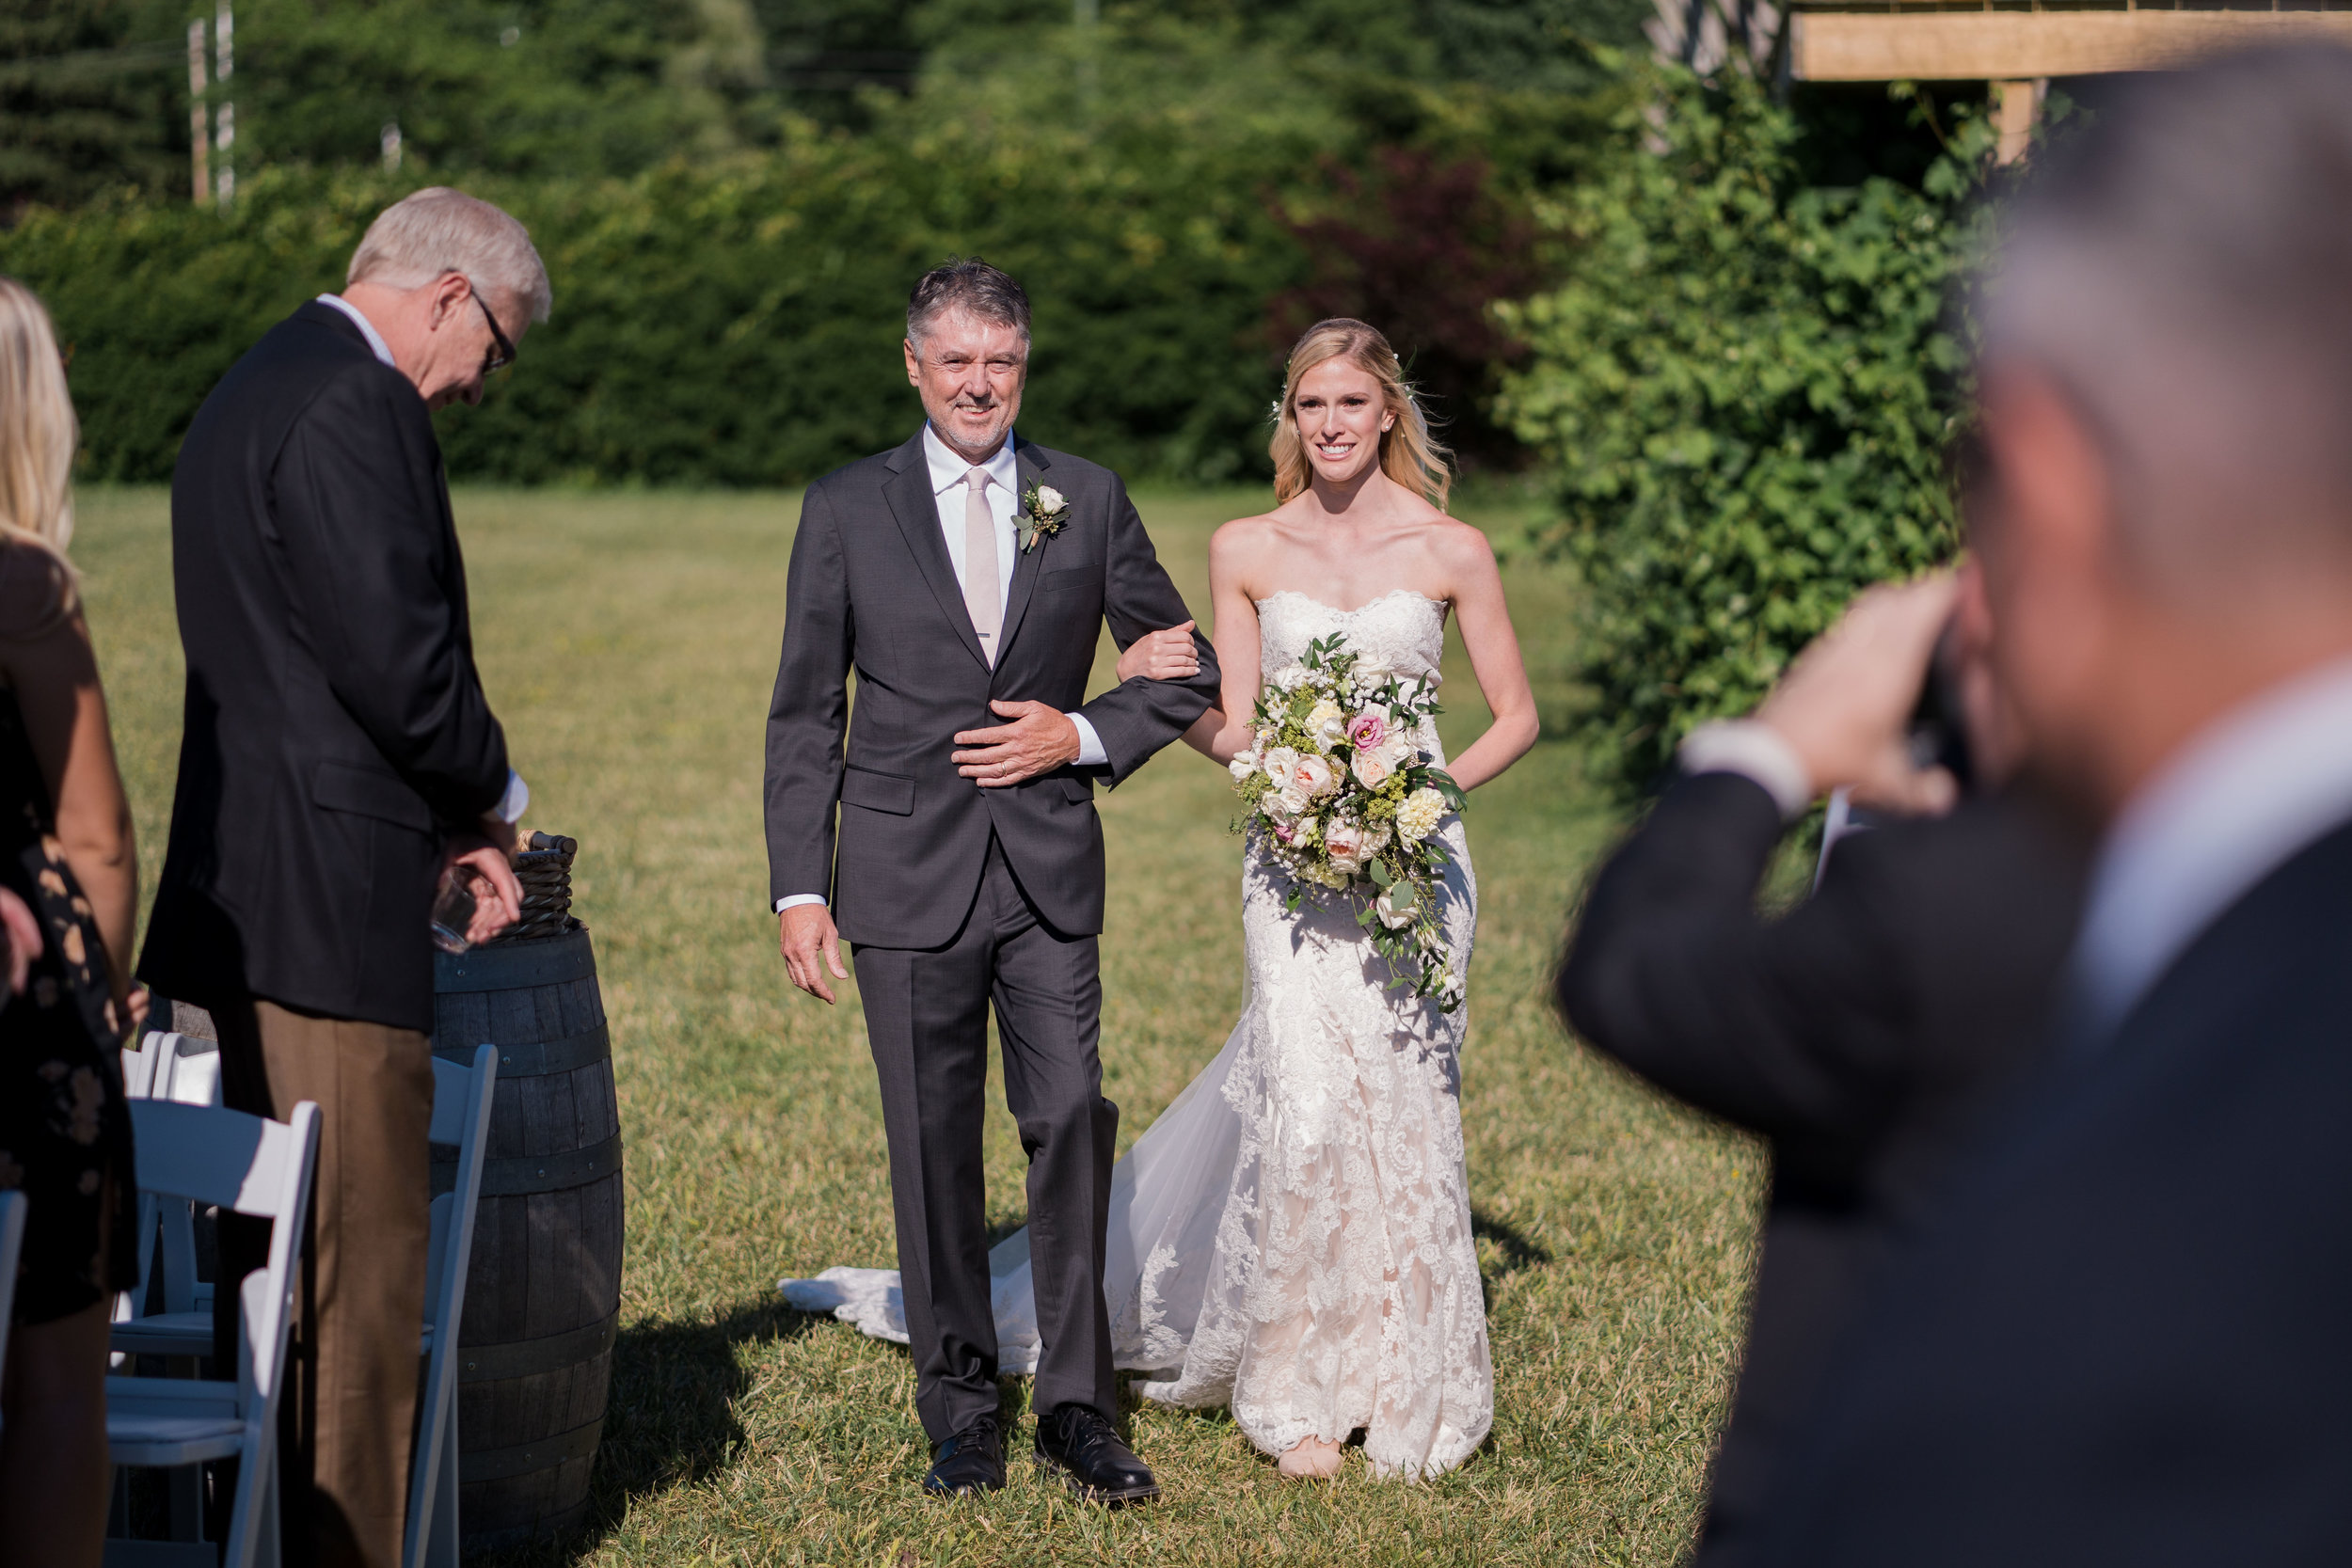 Wedding Photography at Wagner Vineyards Ginny Lee Cafe Finger Lakes by Stefan Ludwig Photography-56.jpg